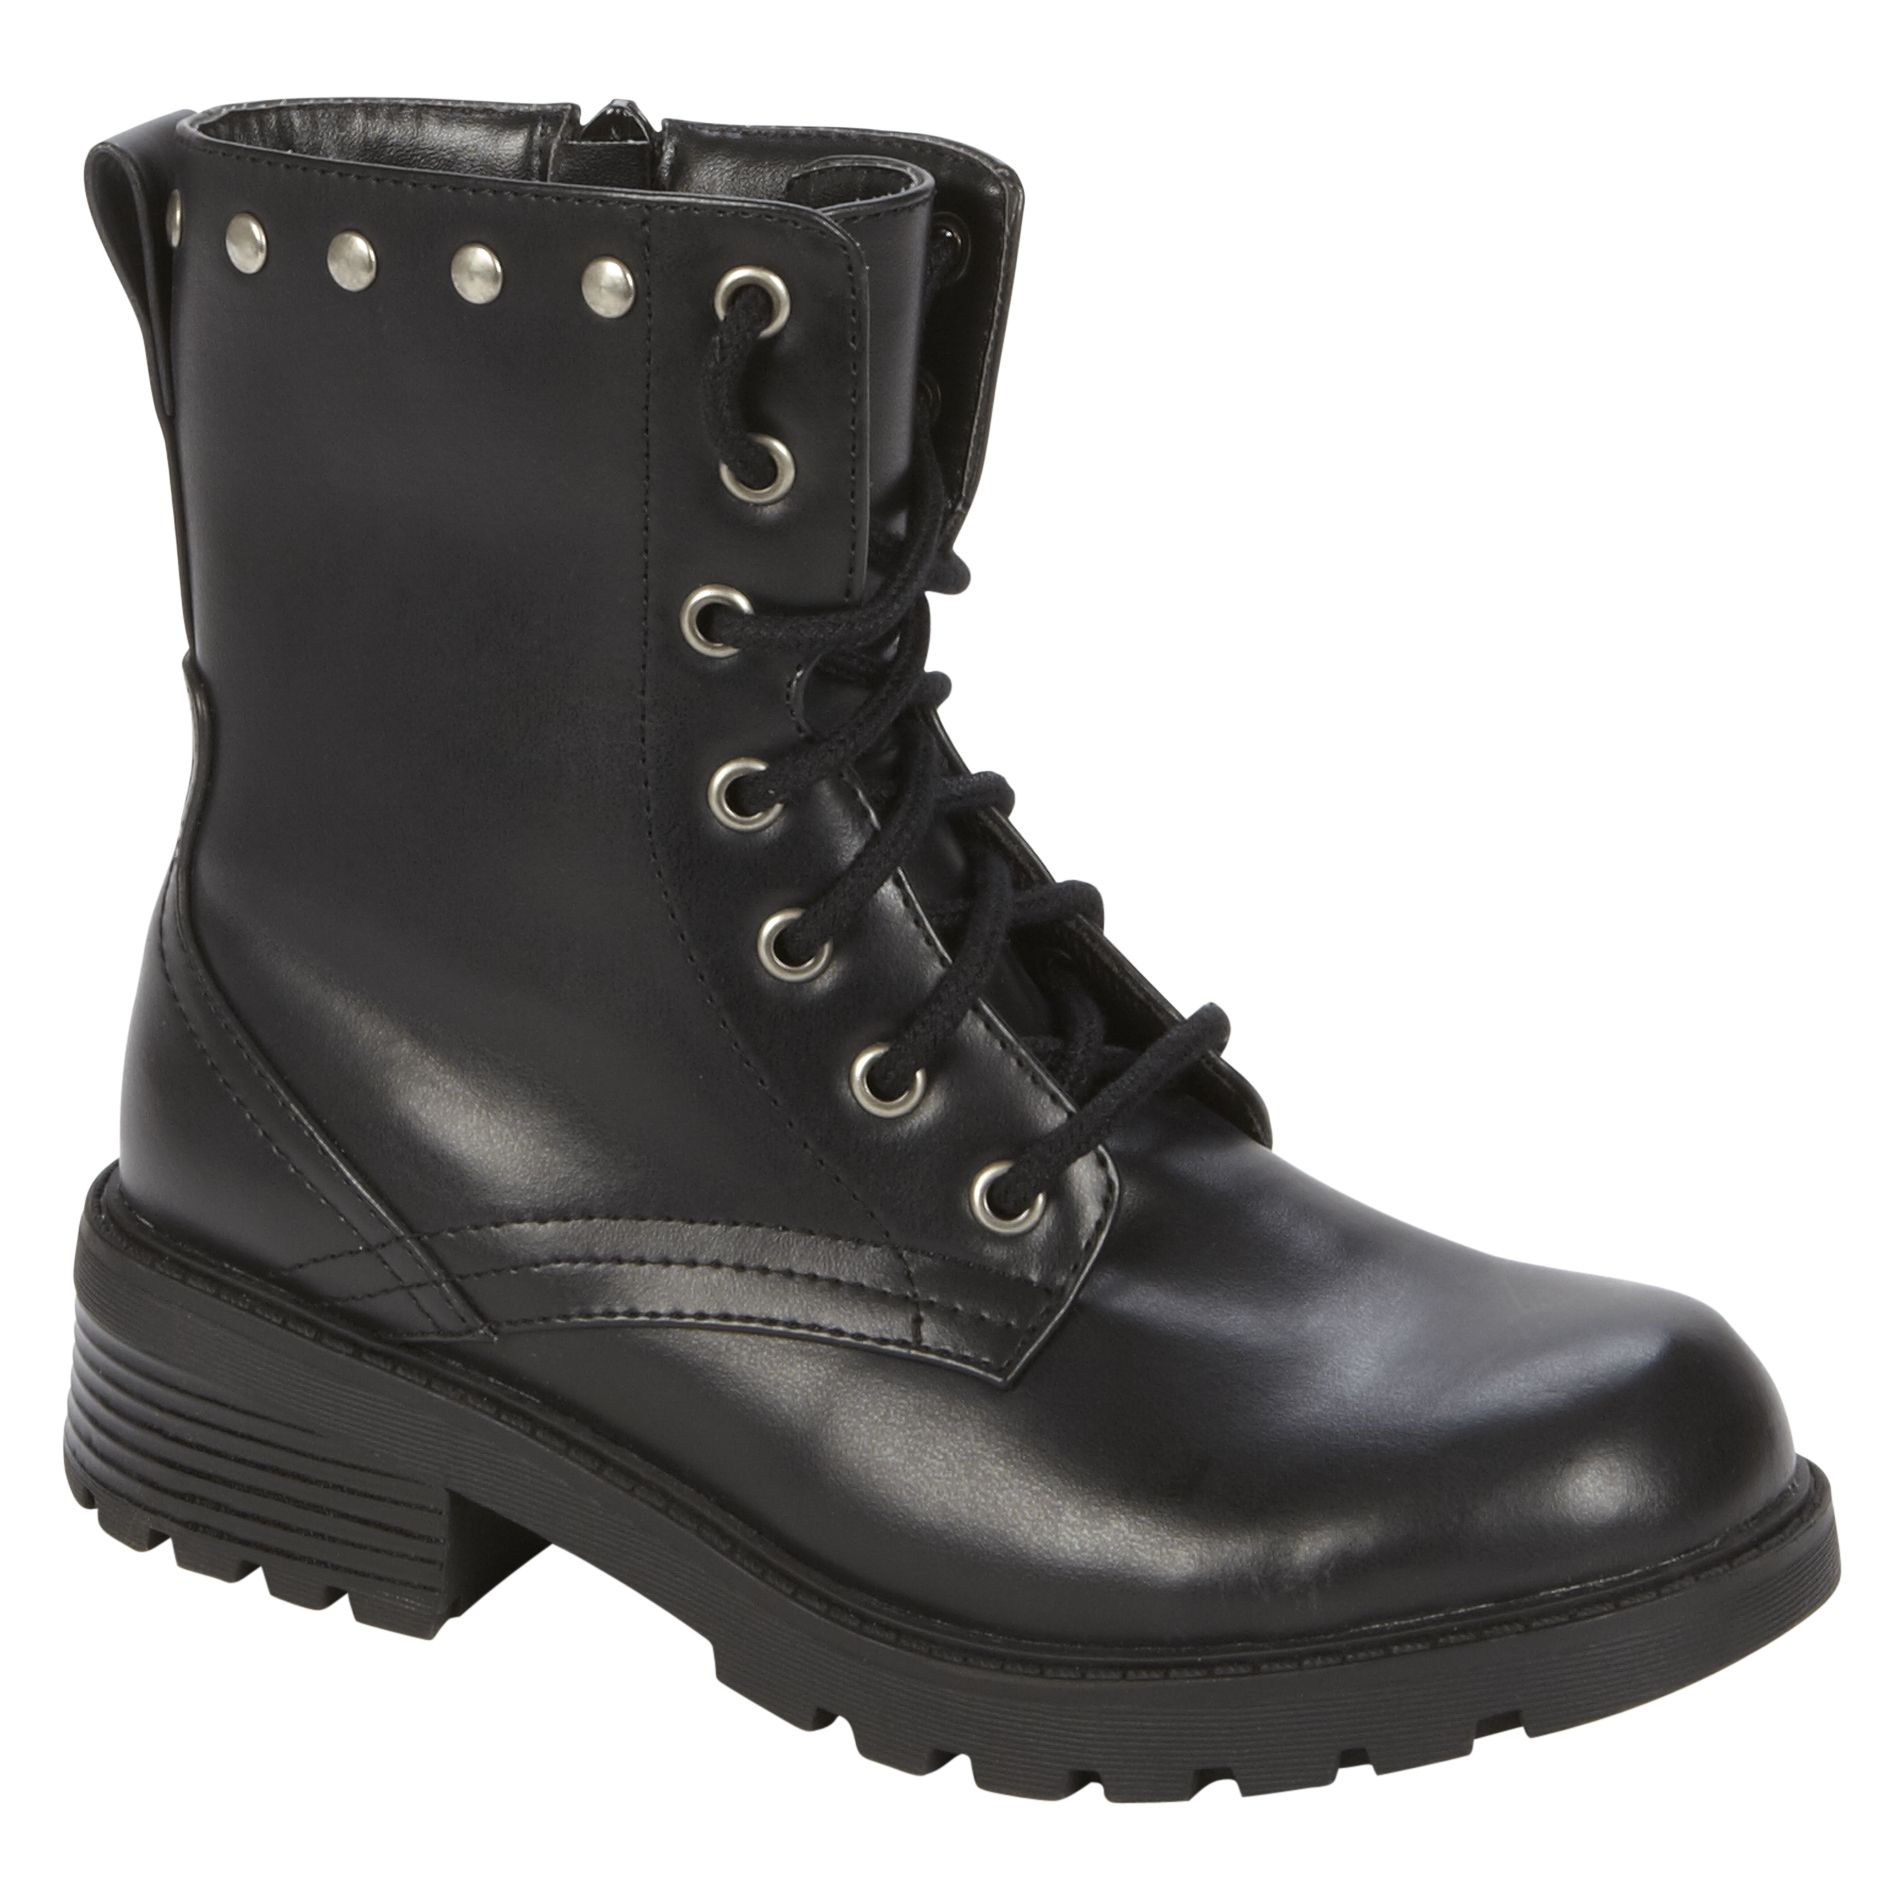 46270fdd6c0 black Doc Martens knockoffs, available at Kmart. Price: $29.99 ...